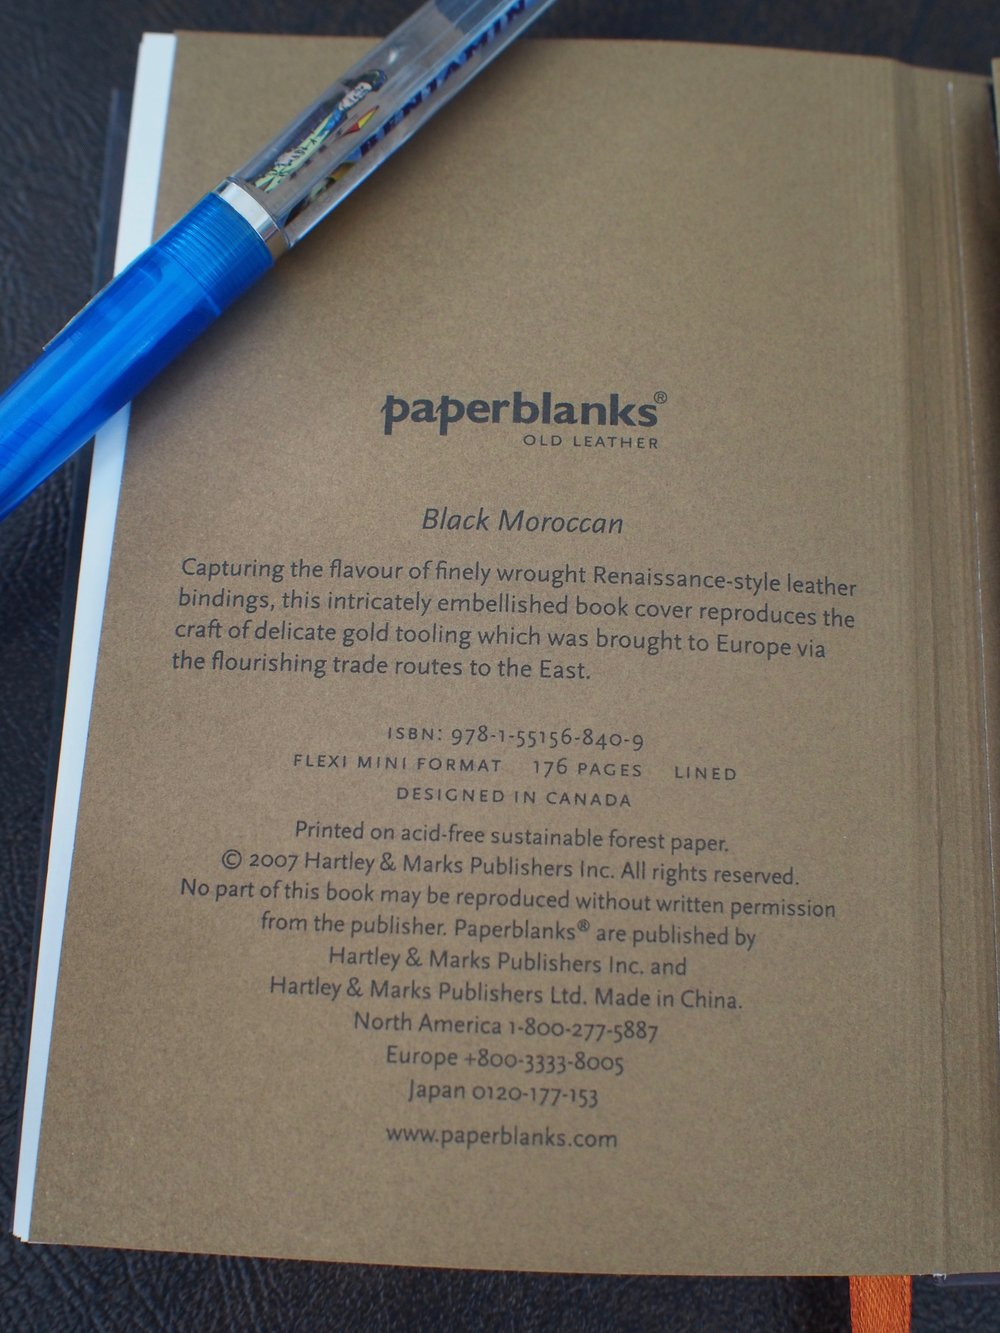 A Canadian connection!  Hartley & Marks is a Canadian publisher that also produces these Paperblanks notebooks.